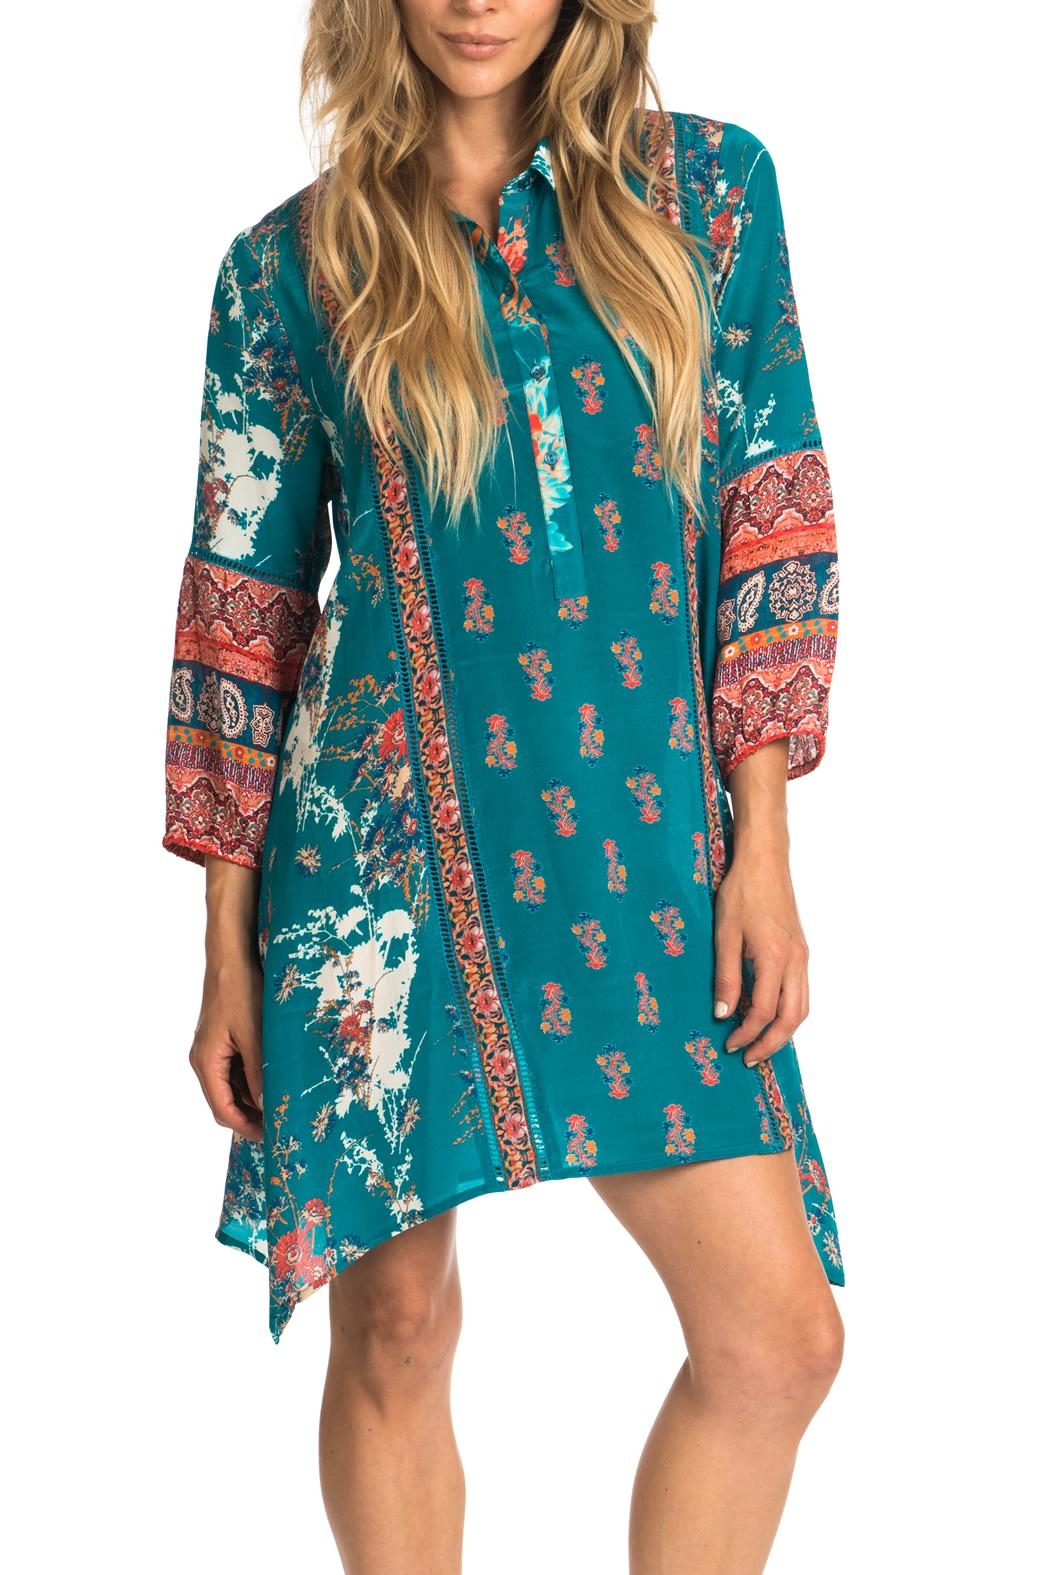 Tolani Tris Jade Tunic Dress - Main Image